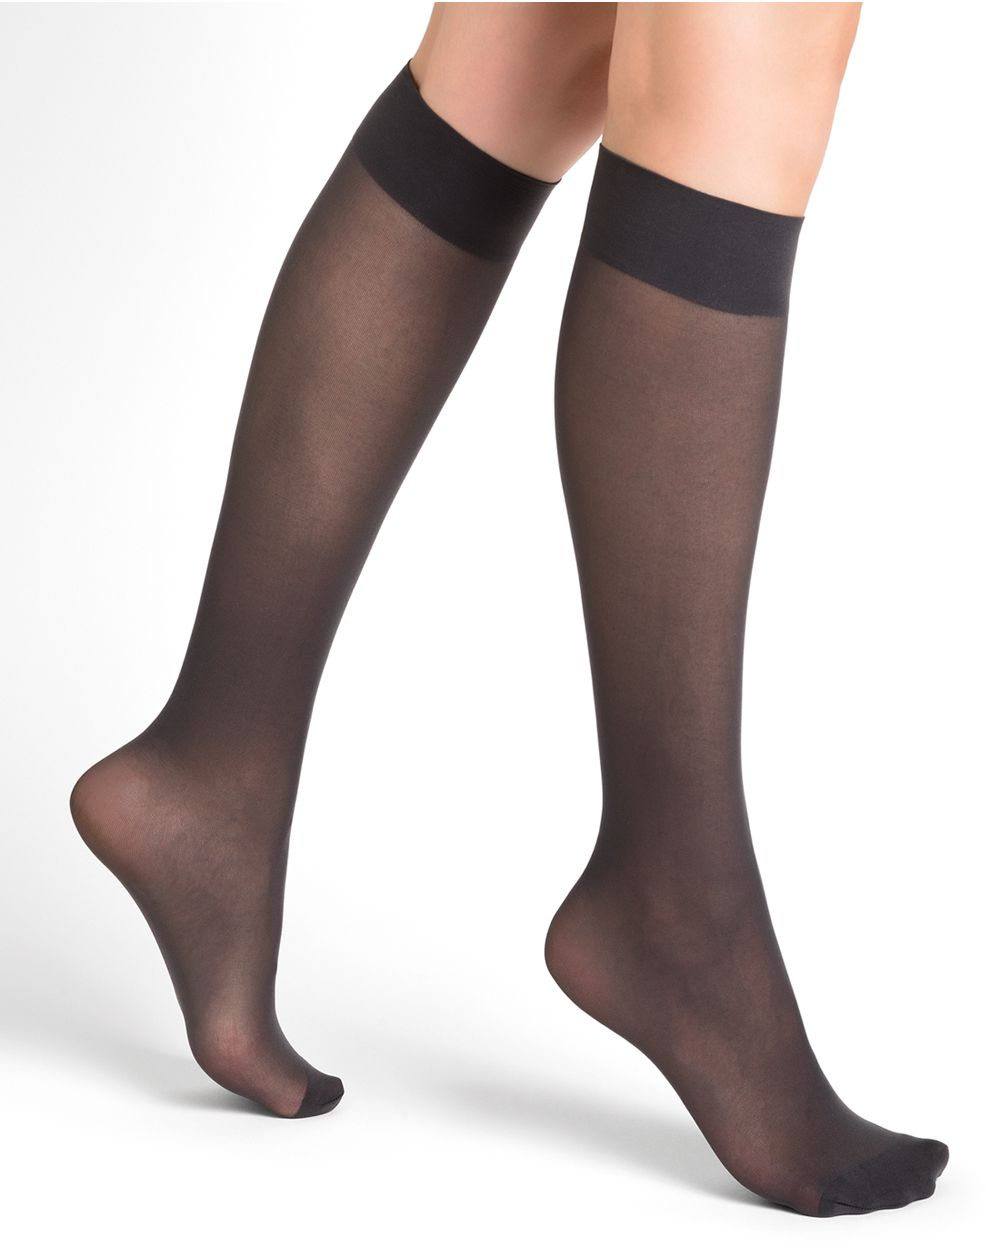 30D semi-opaque knee-highs - Excellence